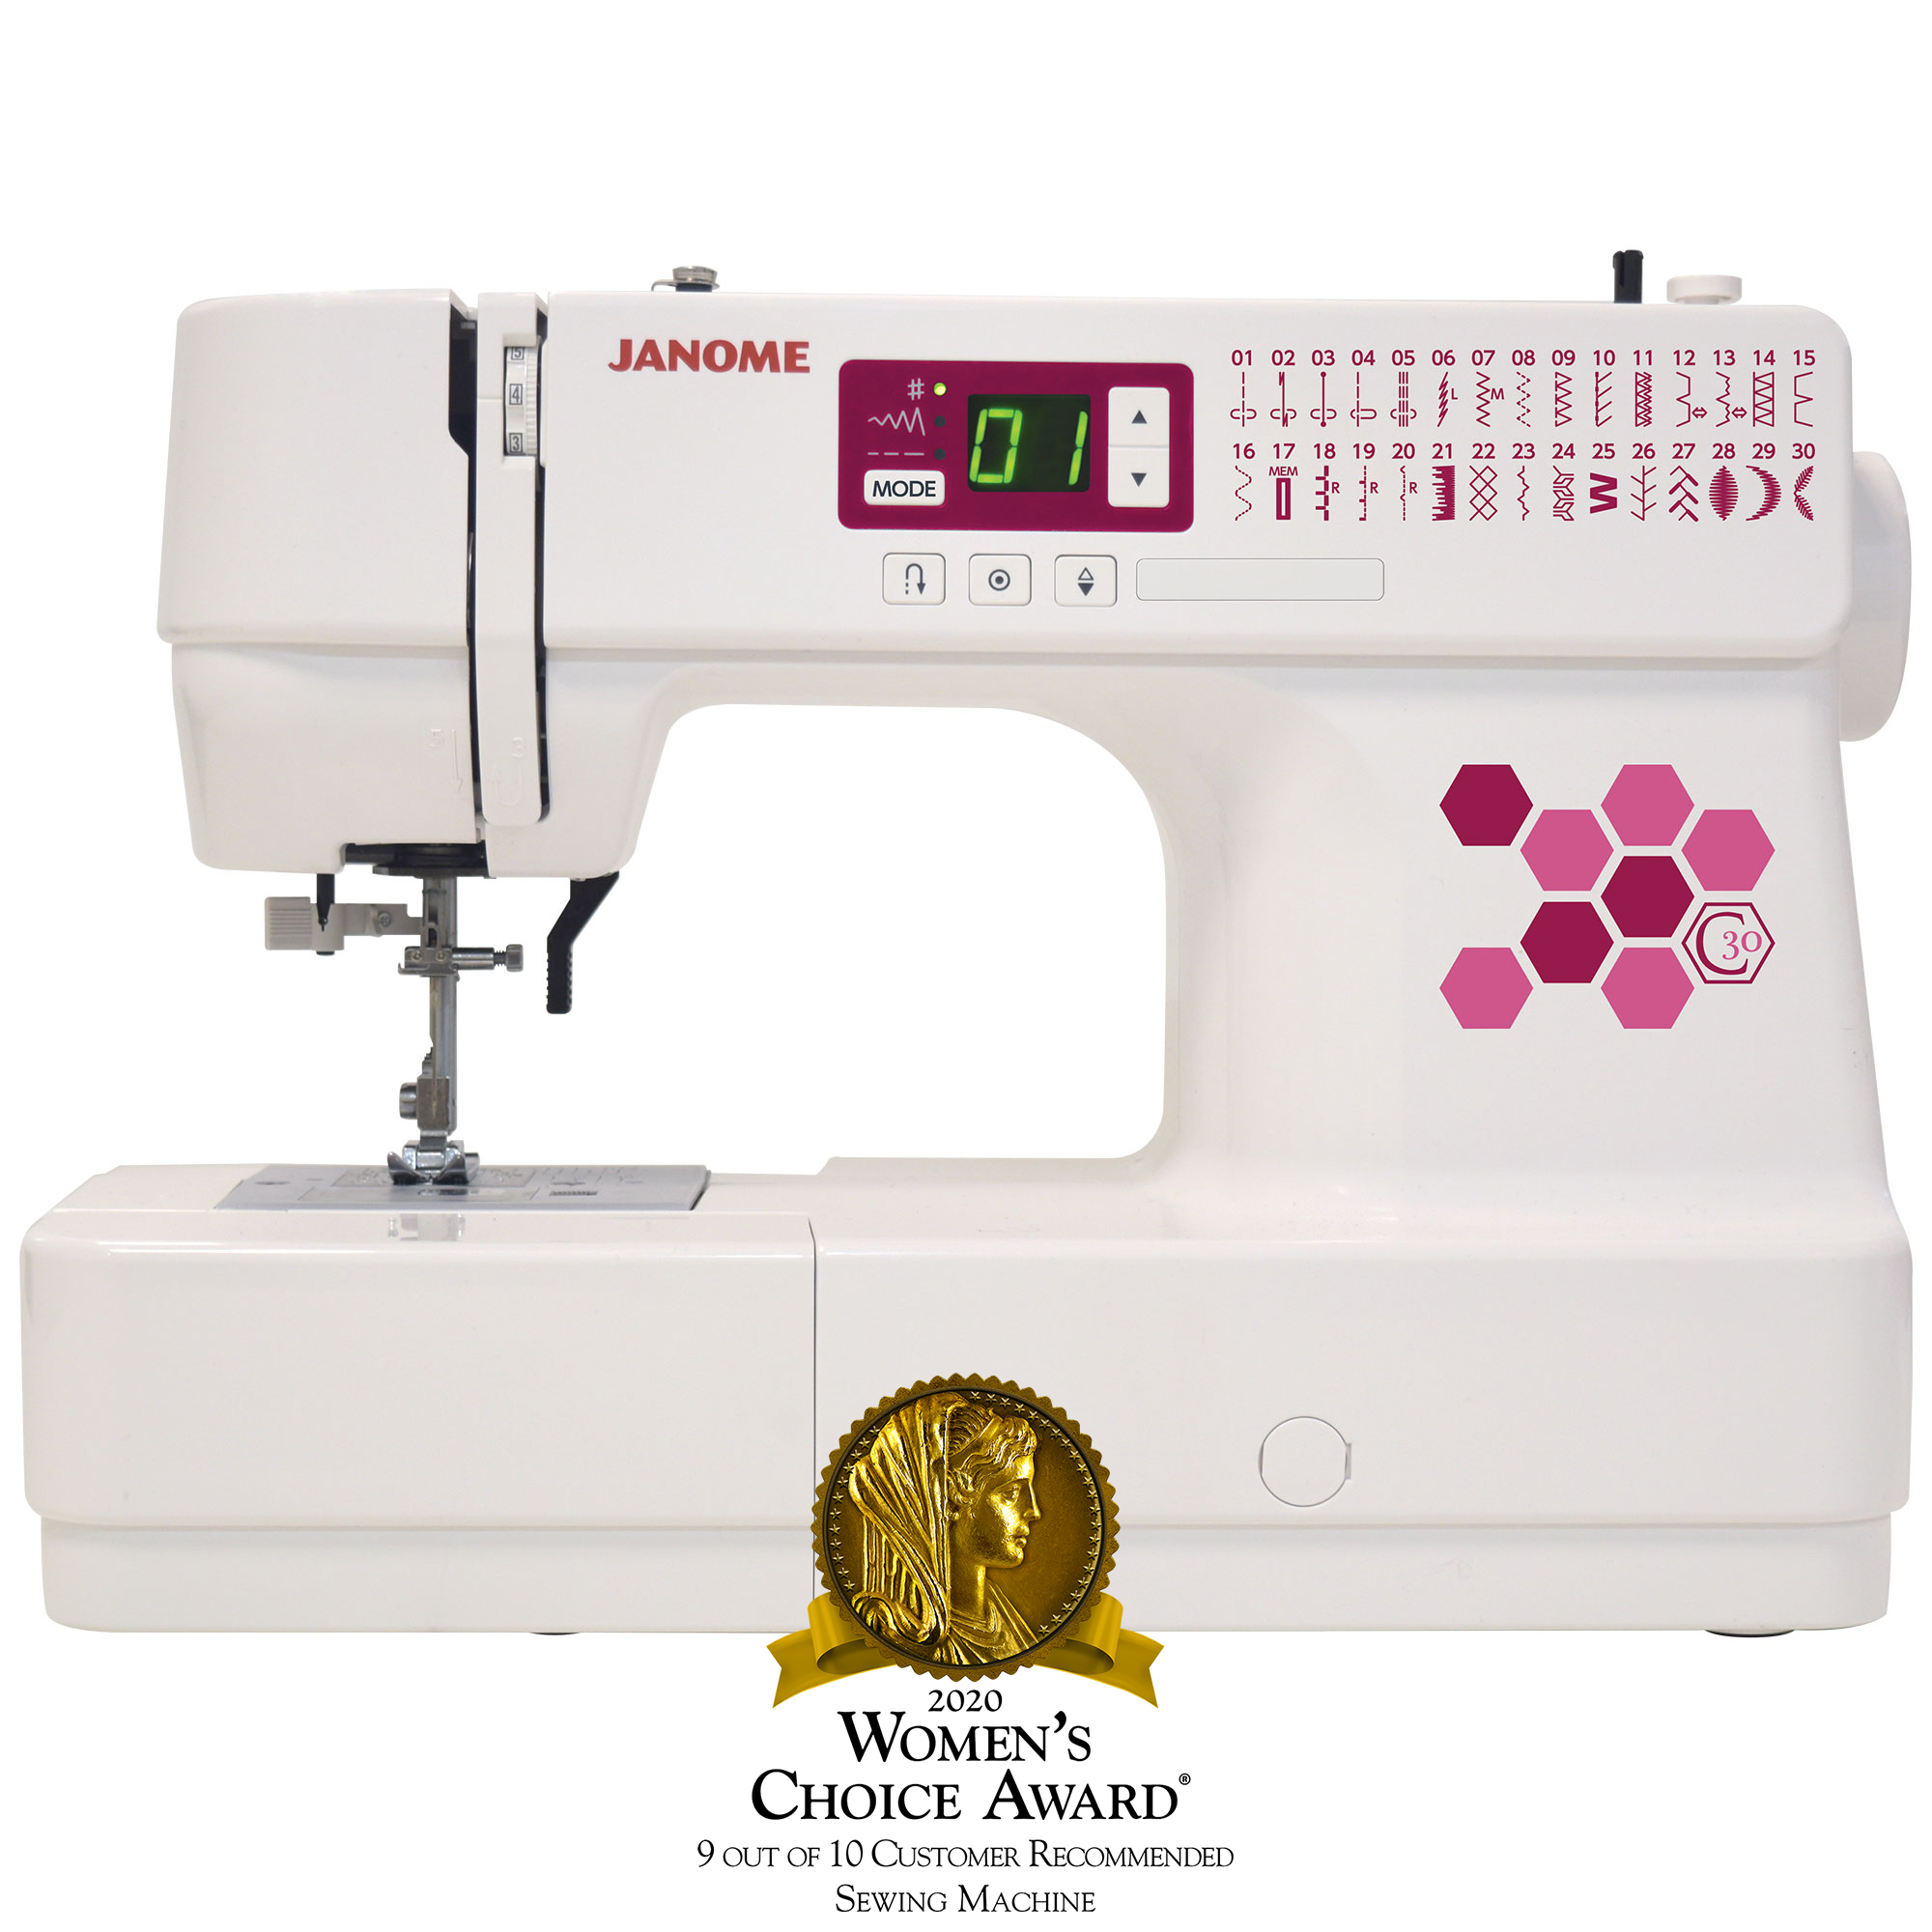 Finest Sewing Machines For All Levels: Your Guide To The Perfect Stitch